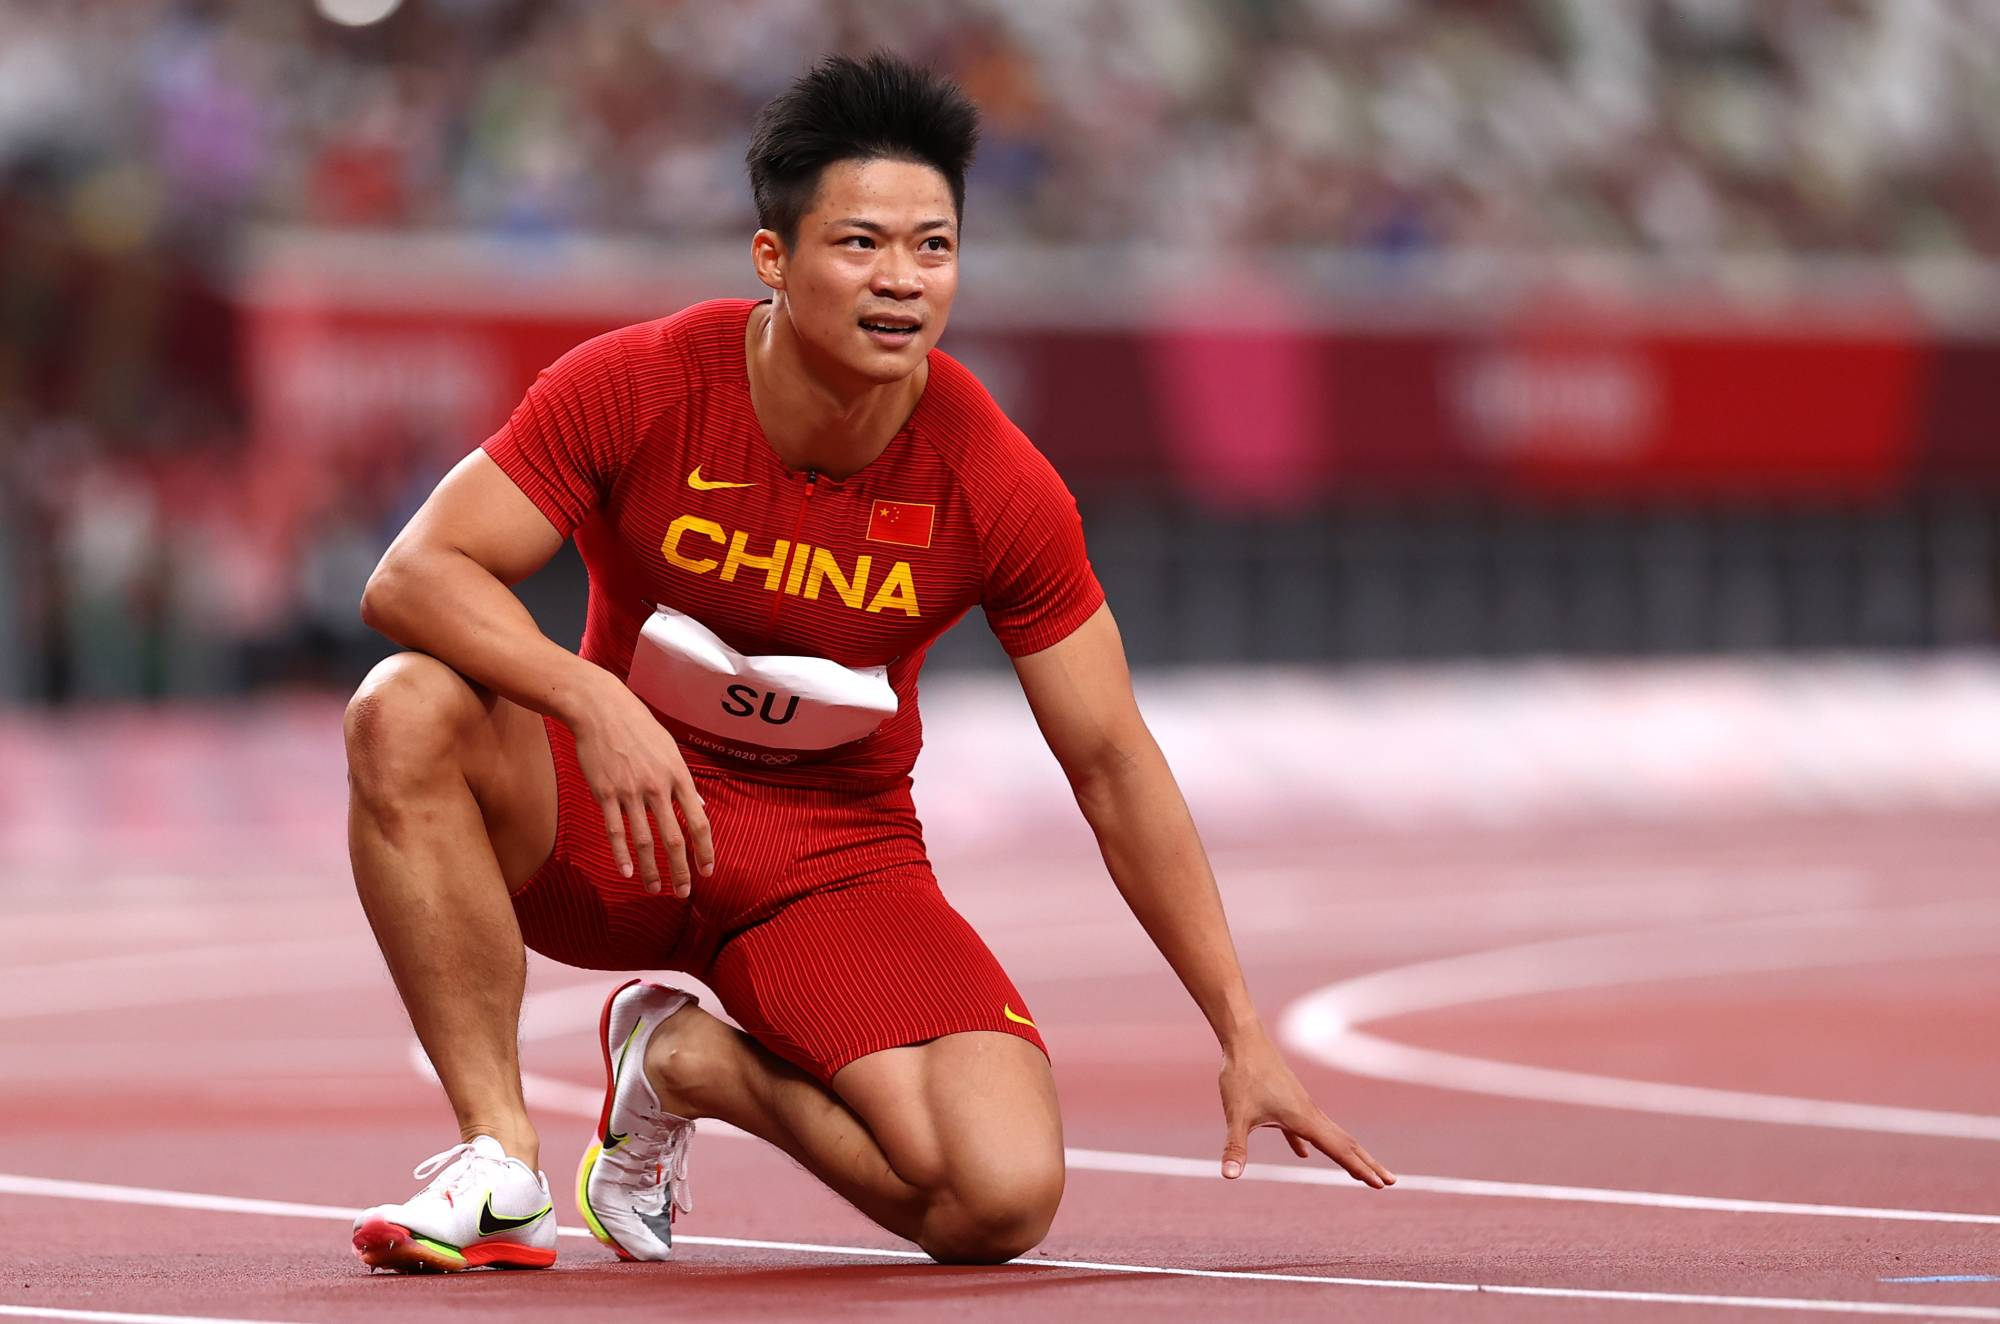 Su  Bingtian finished sixth in the men's 100 meters final on Sunday after qualifying joint-fastest to give China its most high-profile male athletics performance since Liu Xiang won gold in the 110-meter hurdles in Athens in 2004.   REUTERS